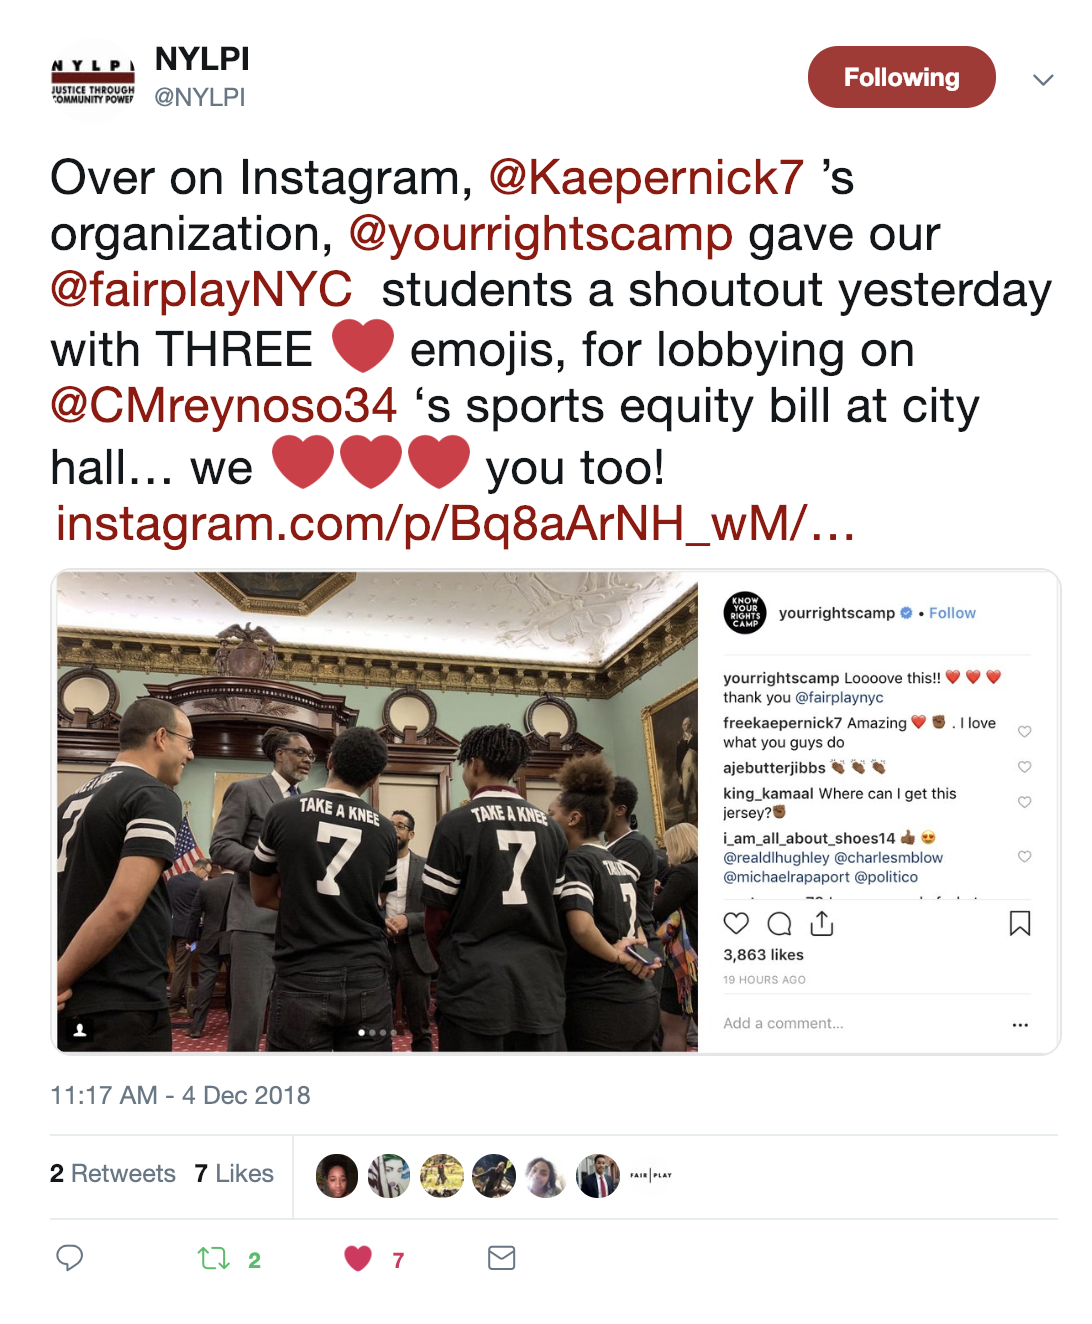 Image shows a tweet by NYLPI, thanking Colin Kaepernick's organization for giving our high school students a shoutout